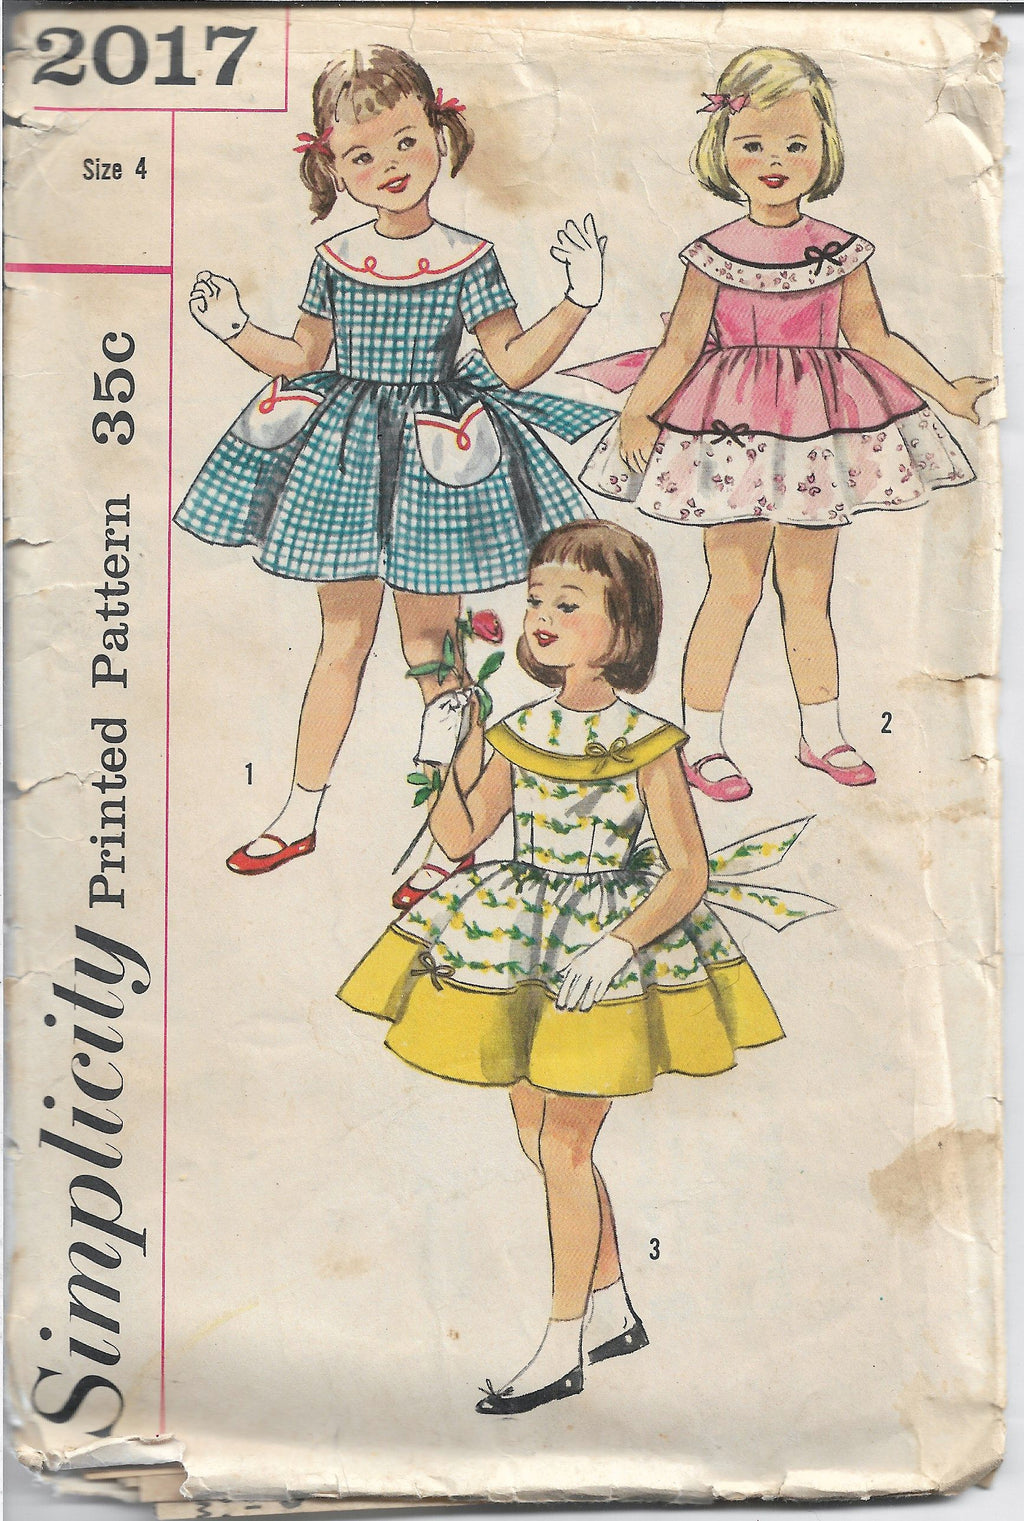 Simplicity 2017 Little Girls Party Dress Vintage Sewing Pattern 1950s - VintageStitching - Vintage Sewing Patterns